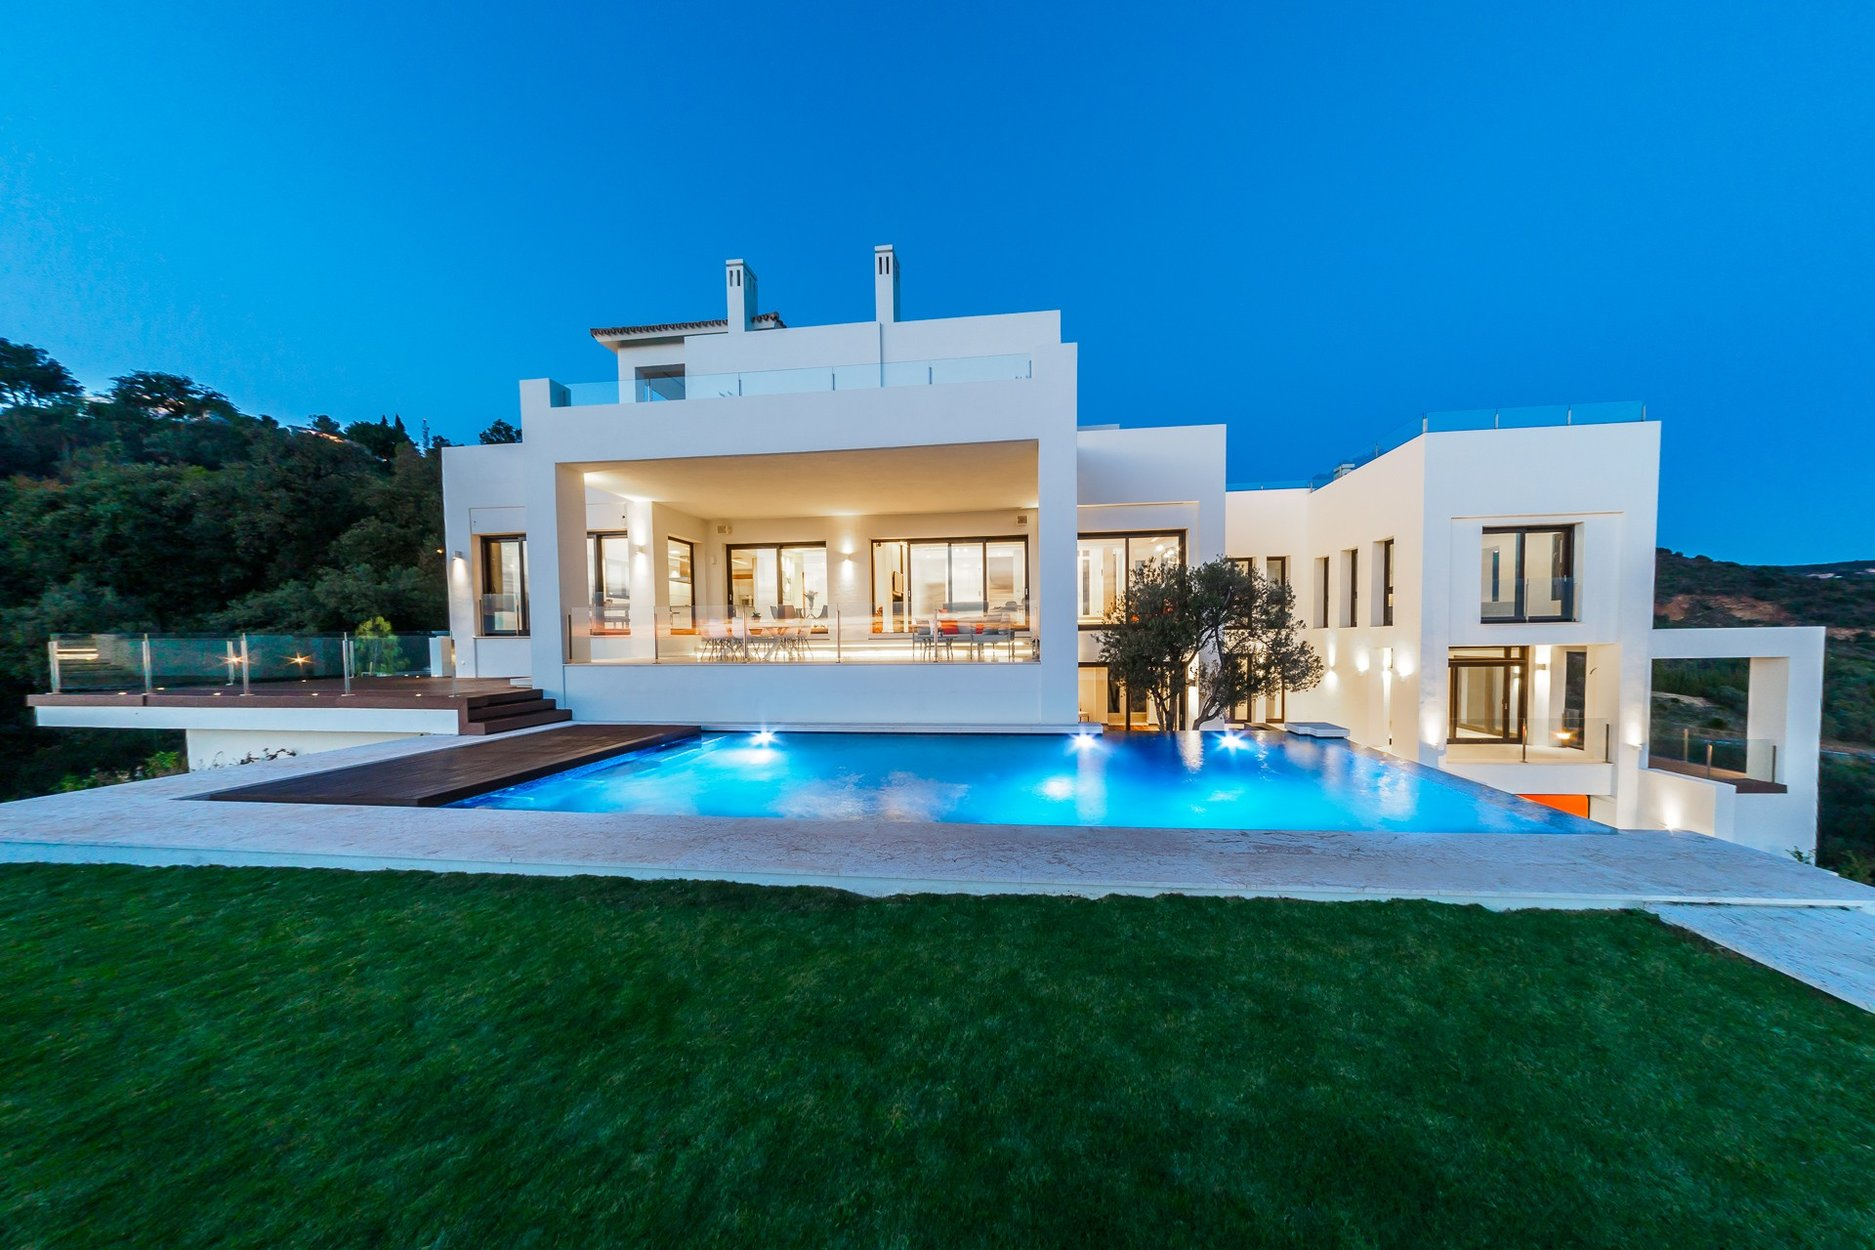 Villa for rent in Marbella, Los Altos de los Monteros